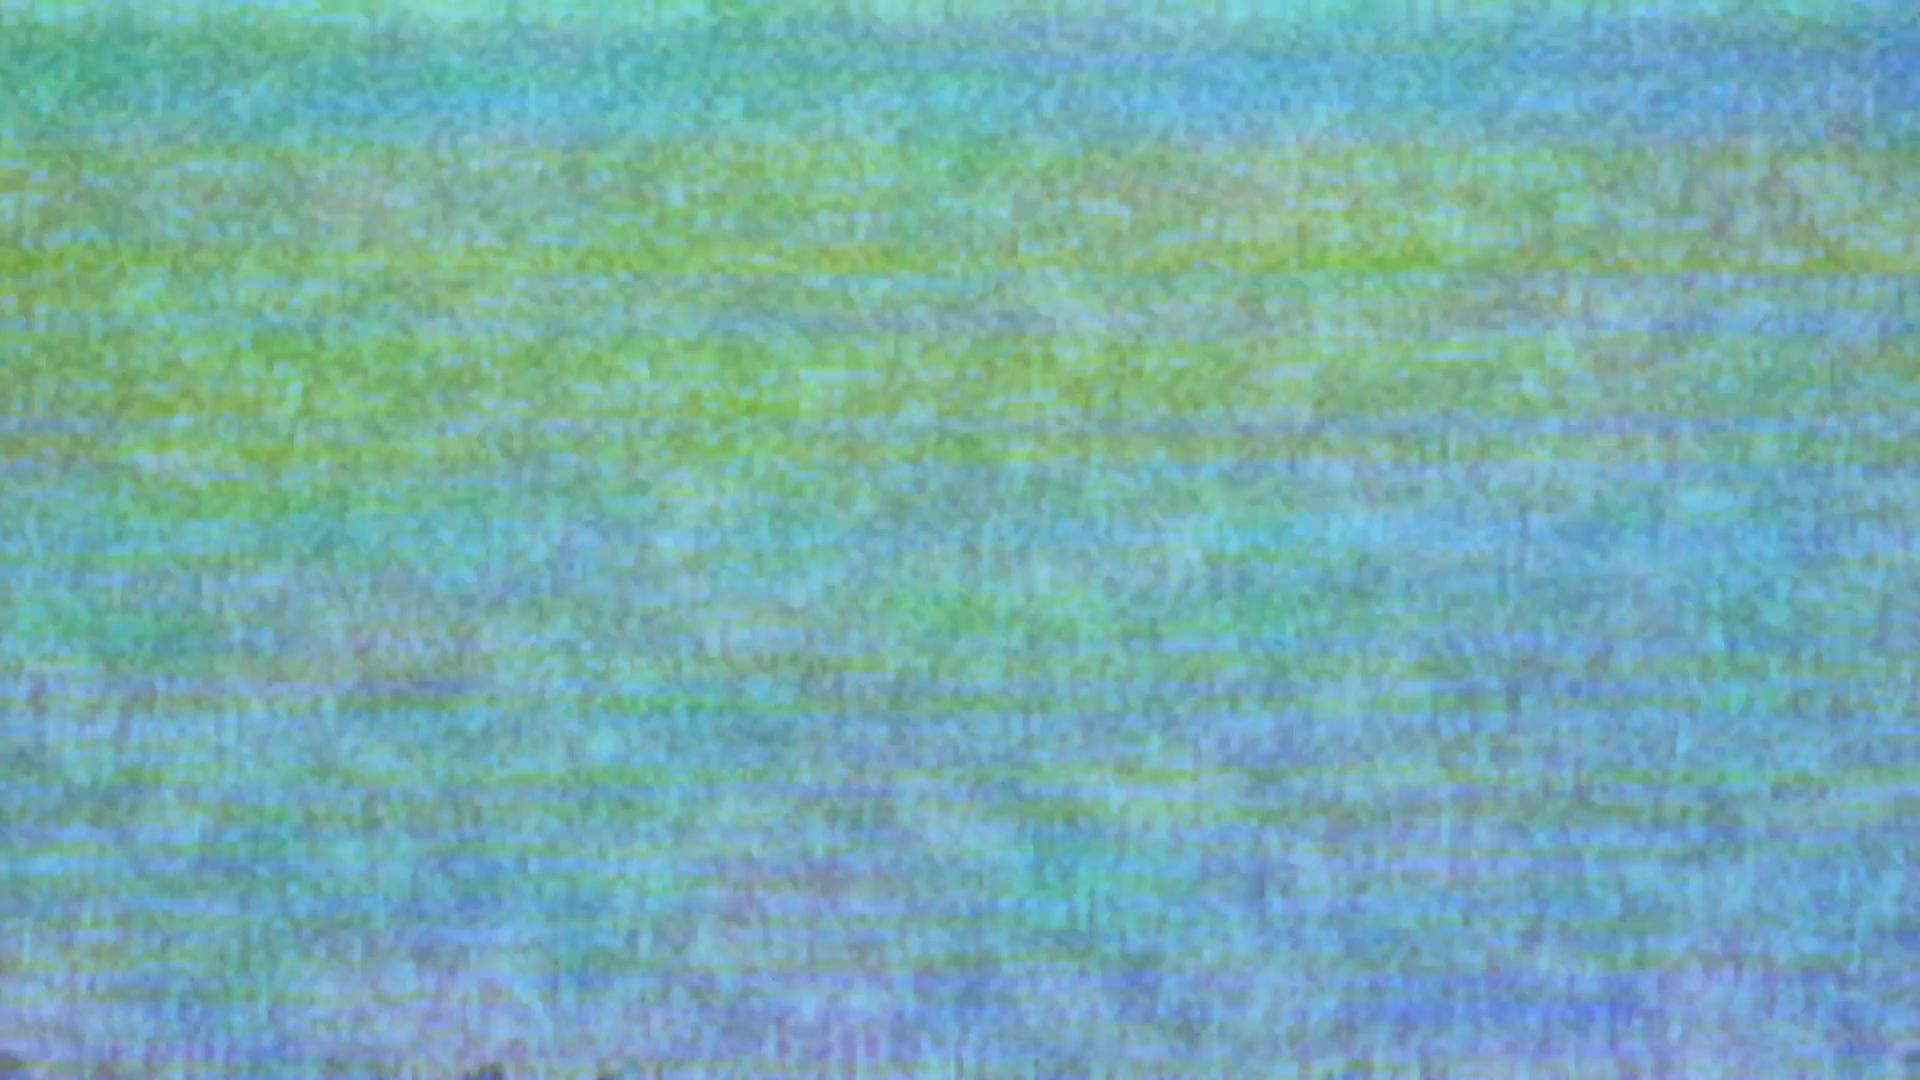 Glitchy vintage vhs video of a moving cloud